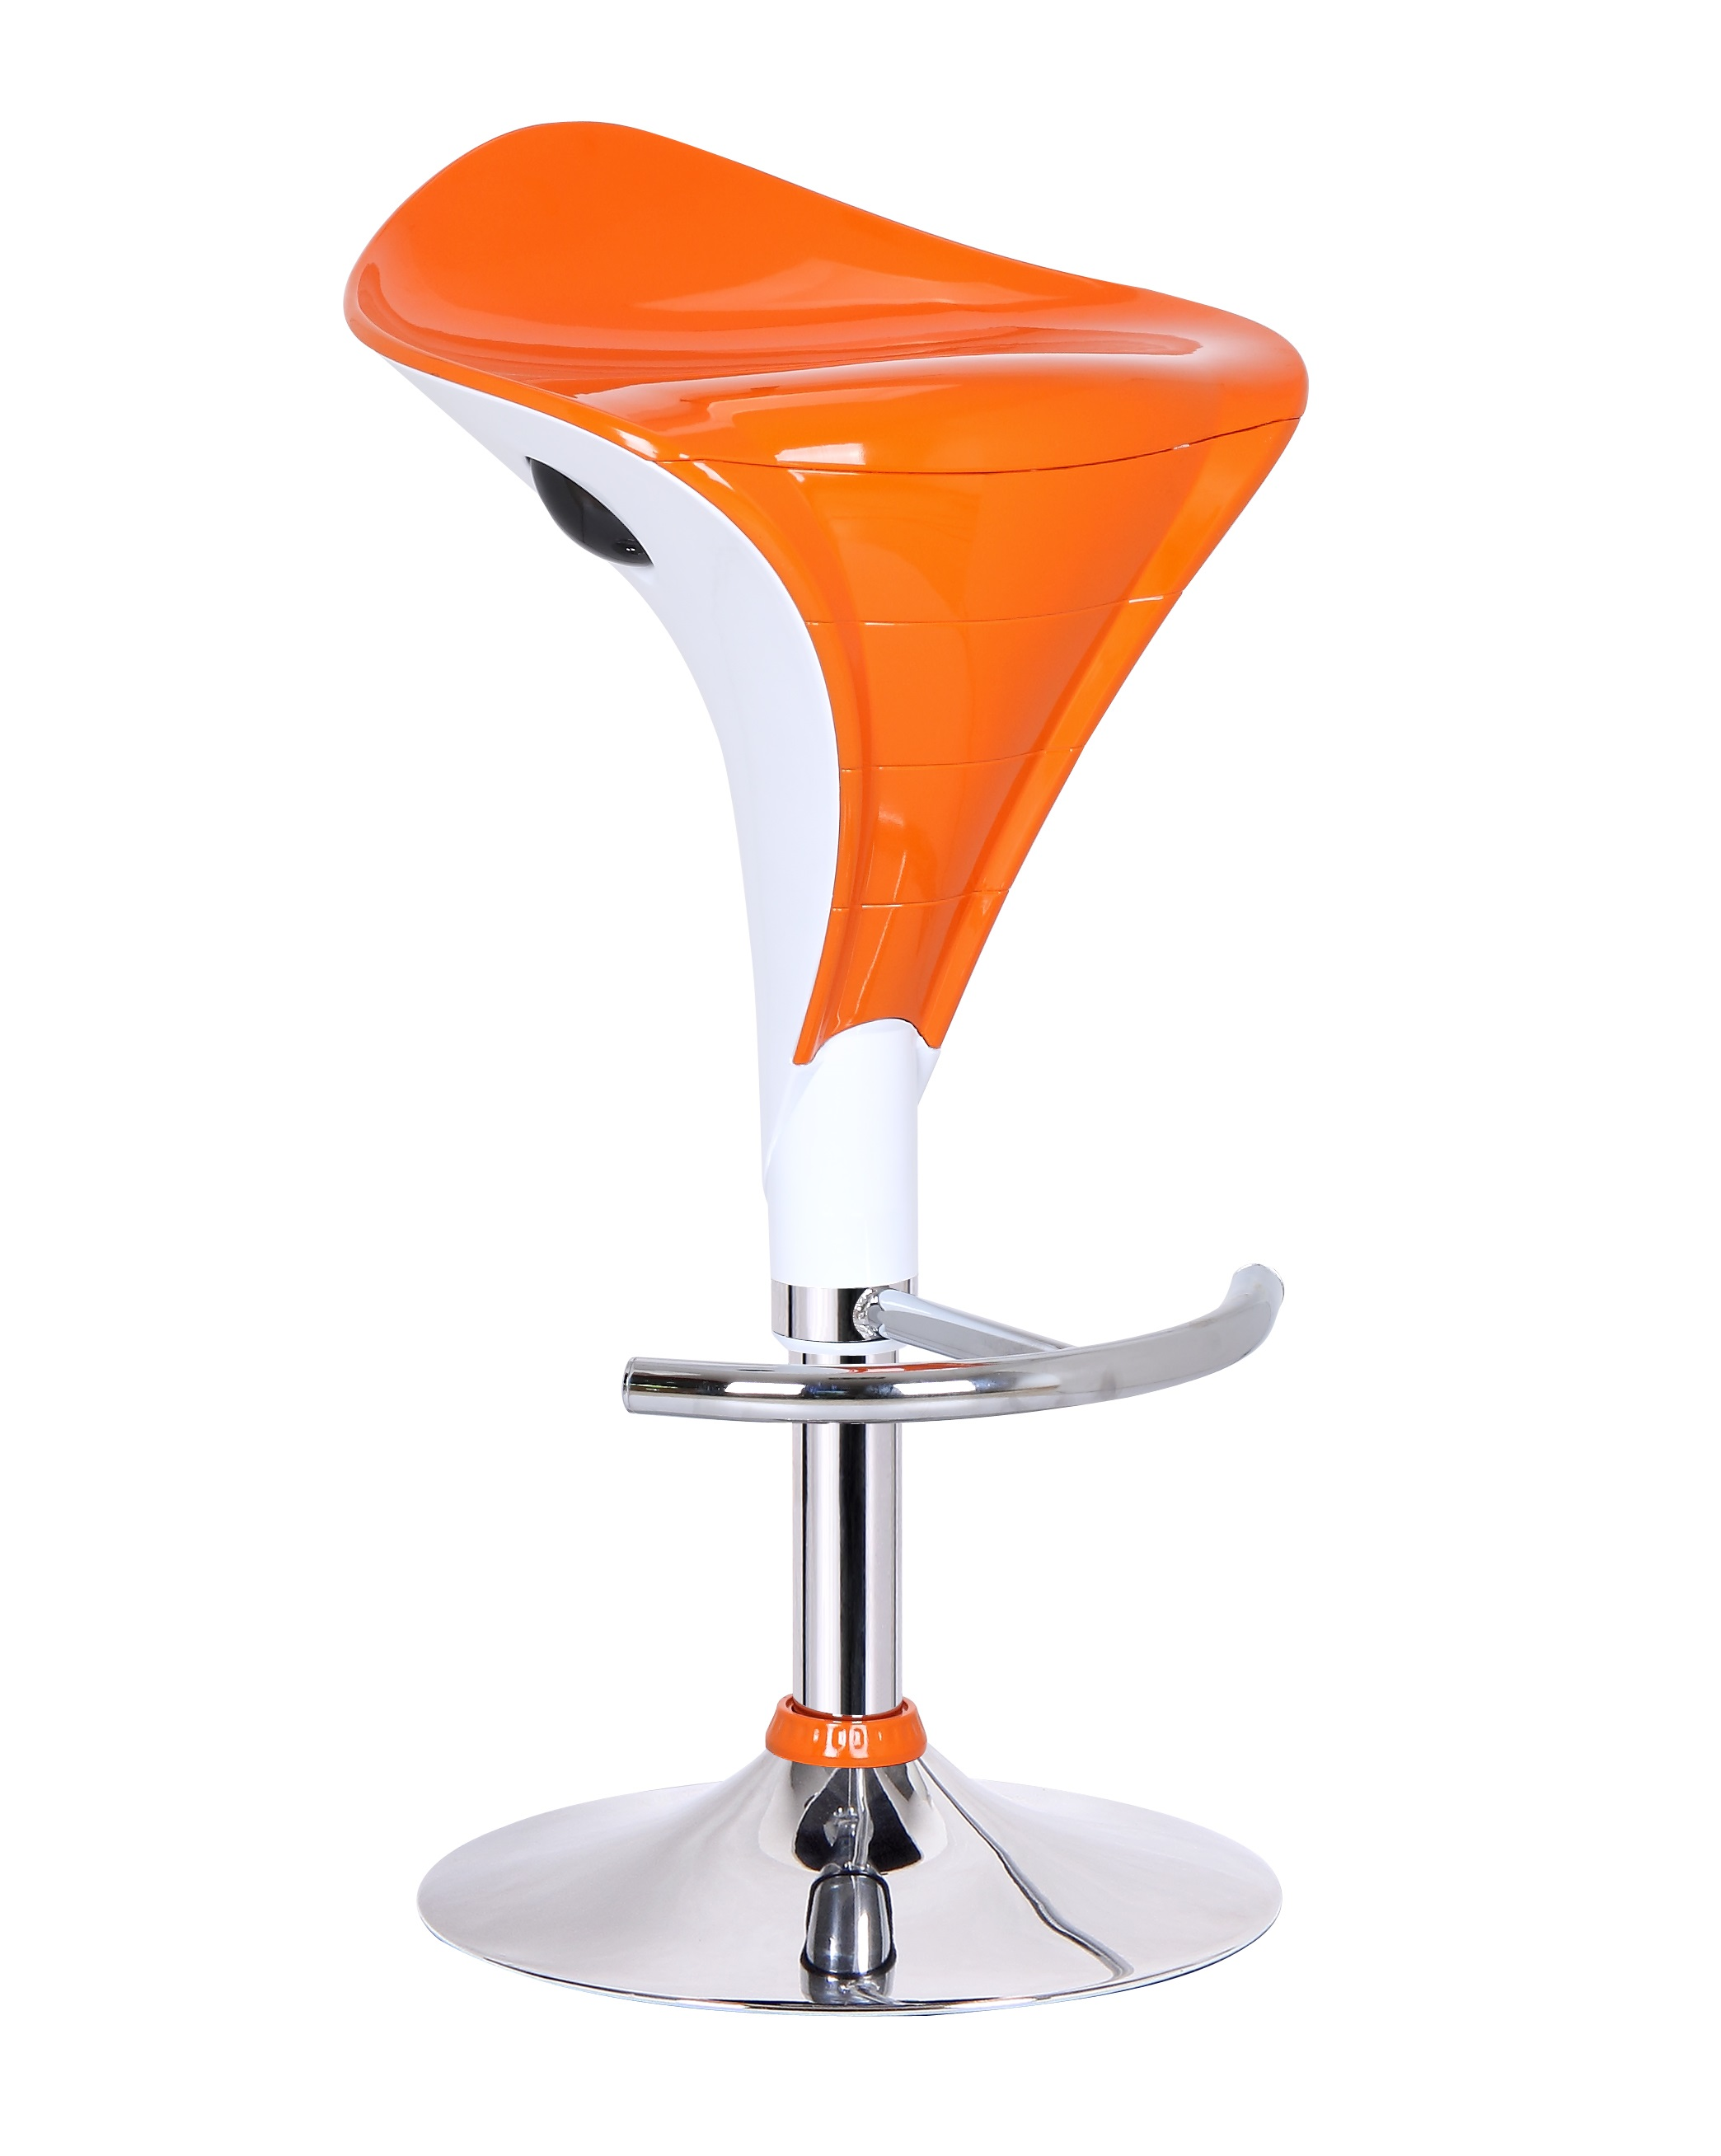 Tabouret de bar design blanc et orange (lot de 2) Marty